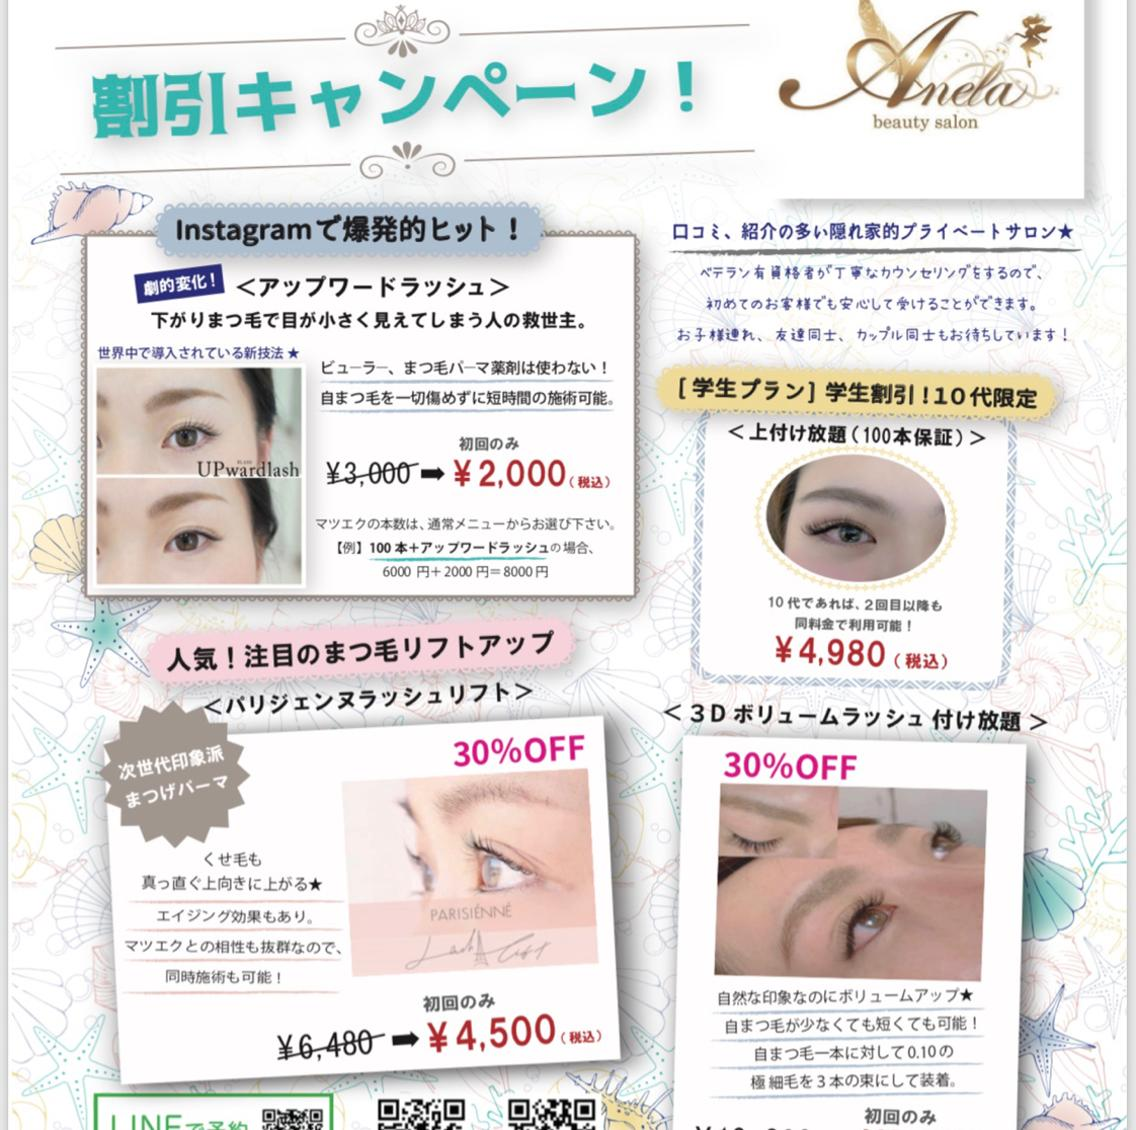 Anela beauty salon所属・Anelaの掲載